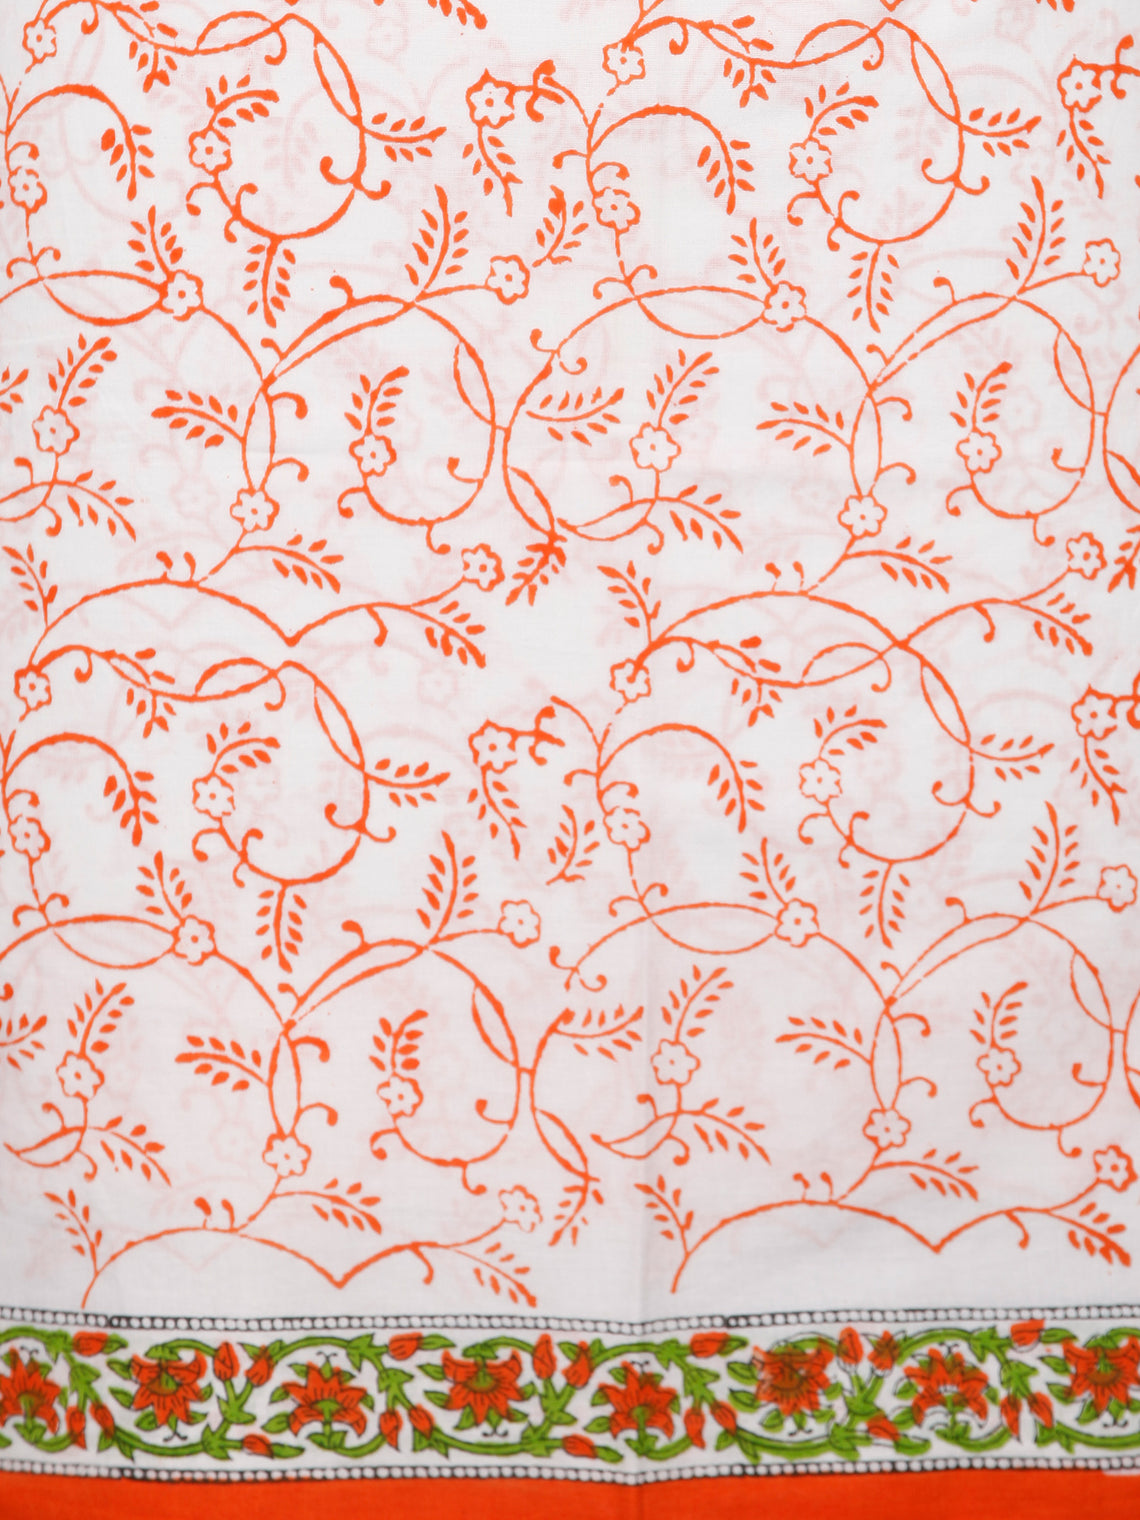 White Orange Green Hand Block Printed Cotton Suit-Salwar Fabric With Chiffon Dupatta (Set of 3) - SU01HB383